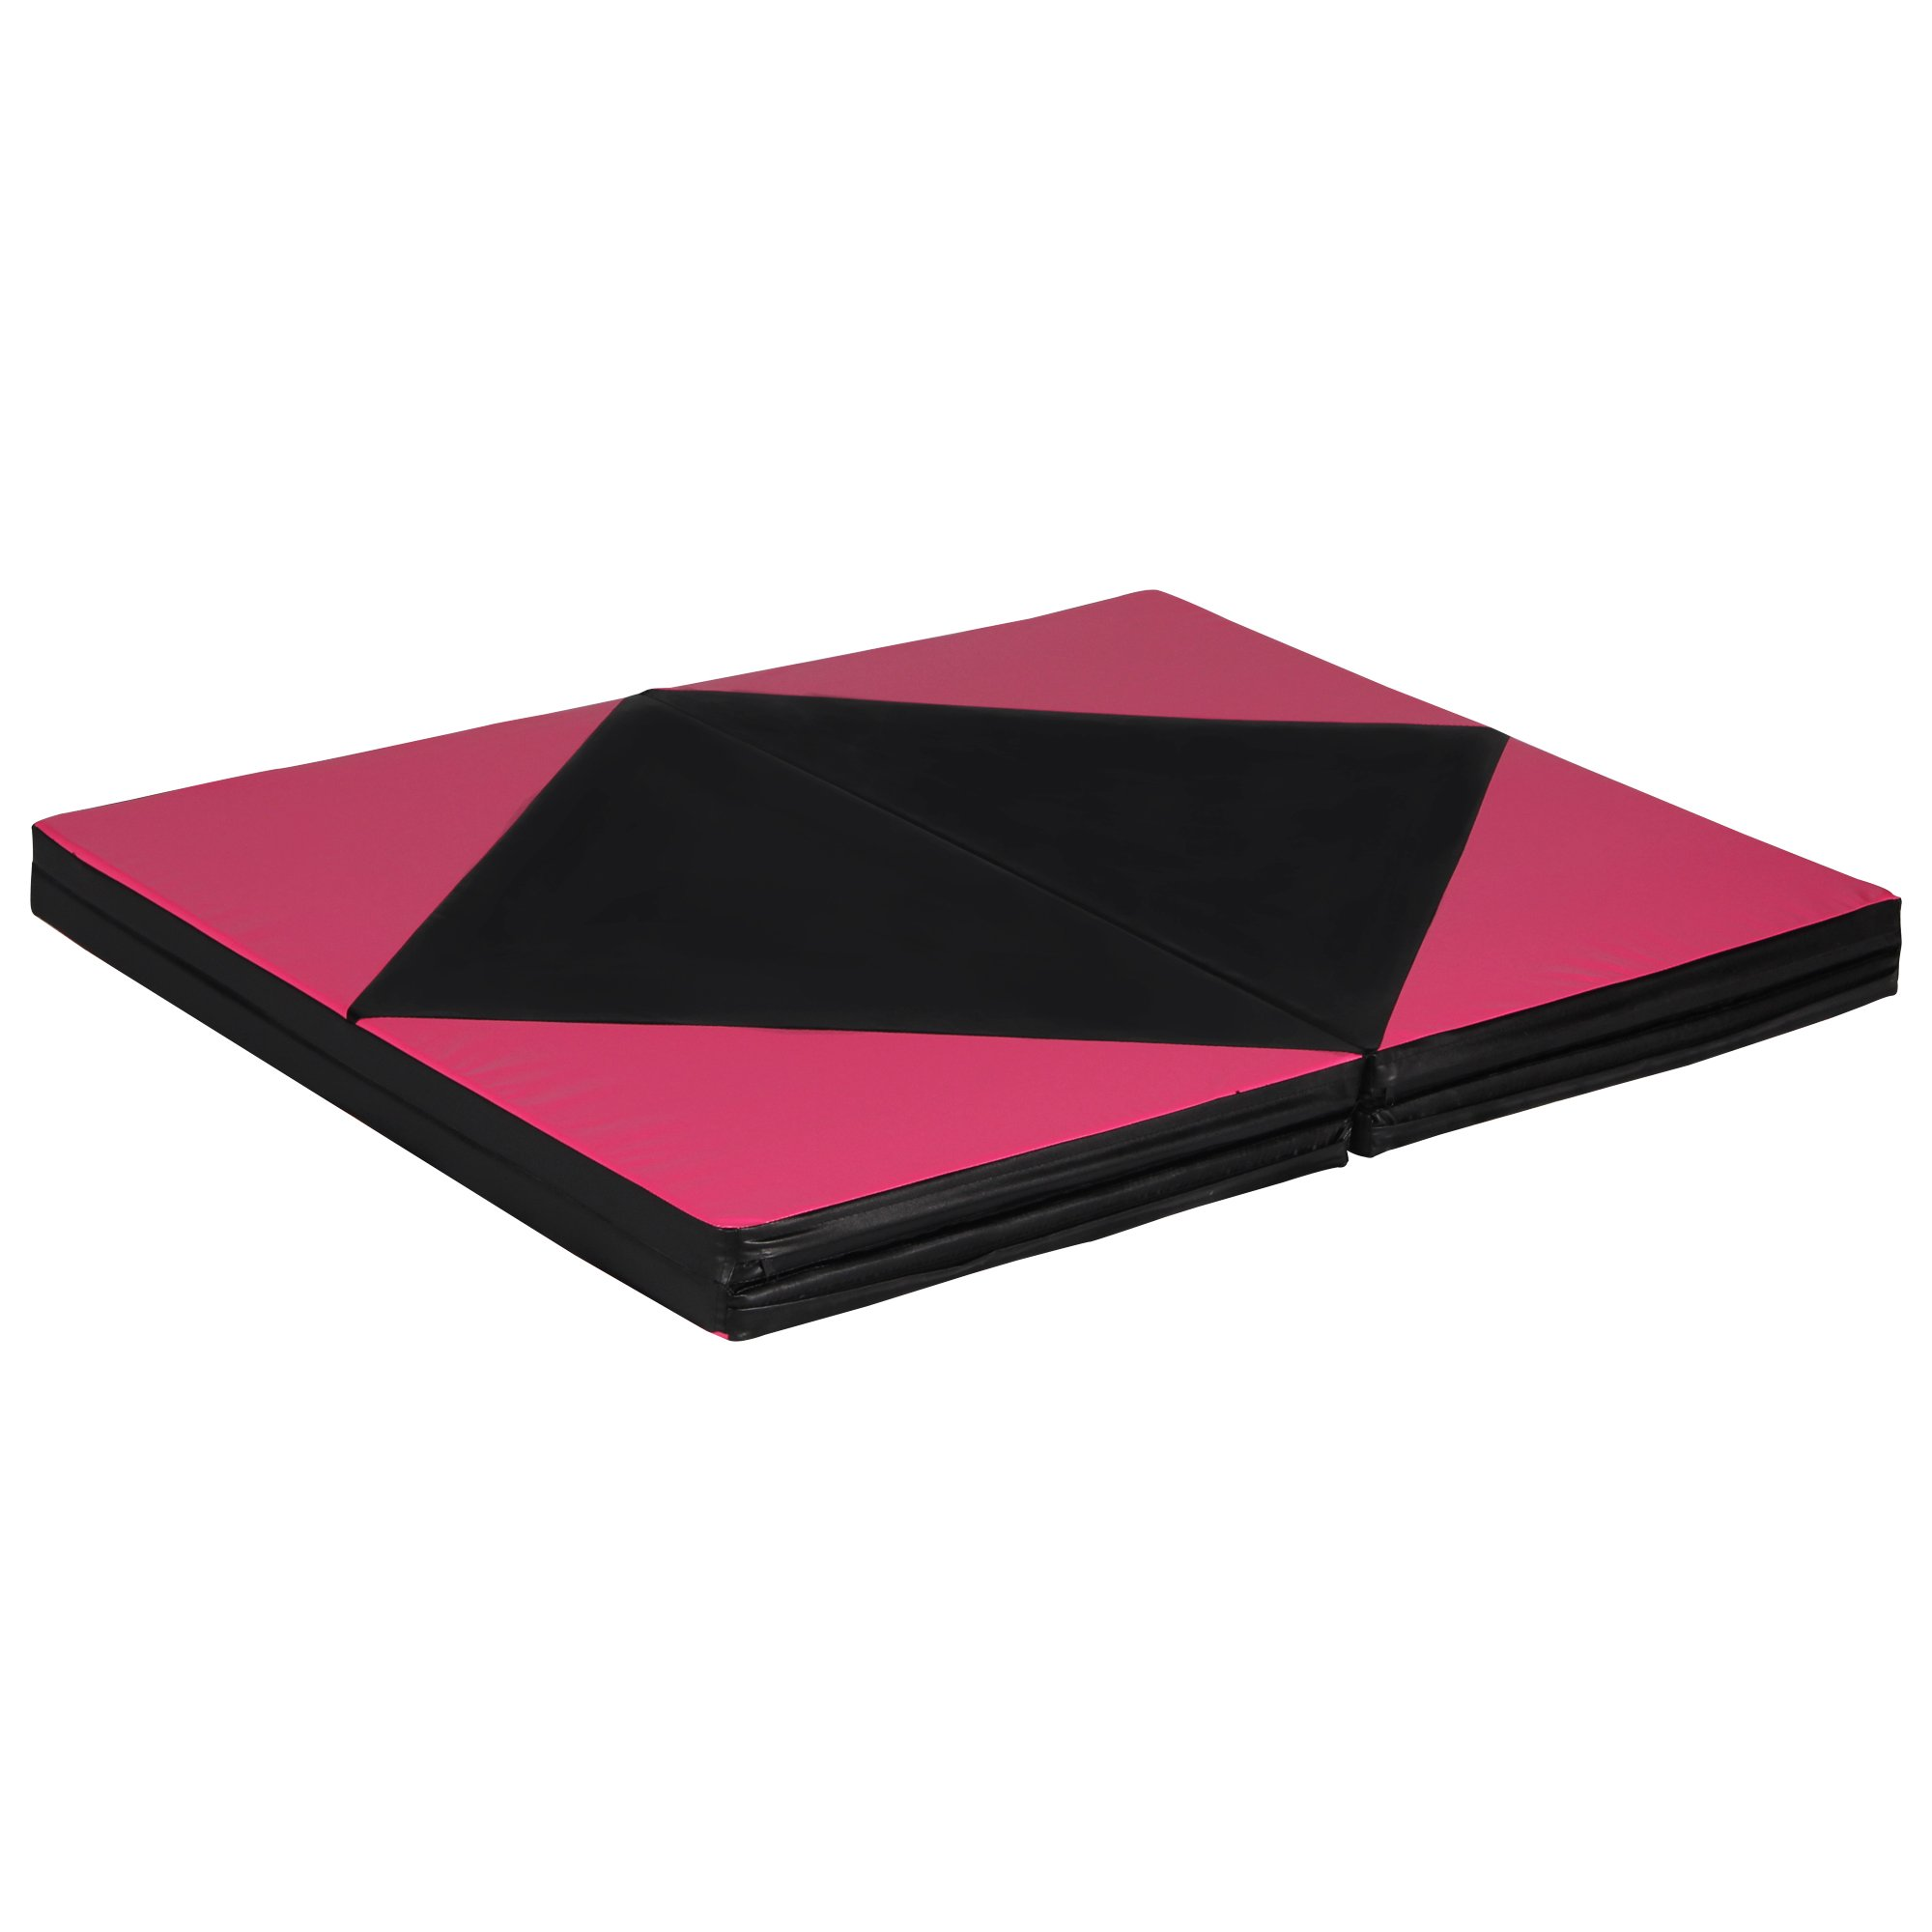 Sportmad 4'x10'x2 Thick Folding Panel Gymnastics Tumbling Mat for Home Gym Fitness Exercise by Sportmad (Image #9)